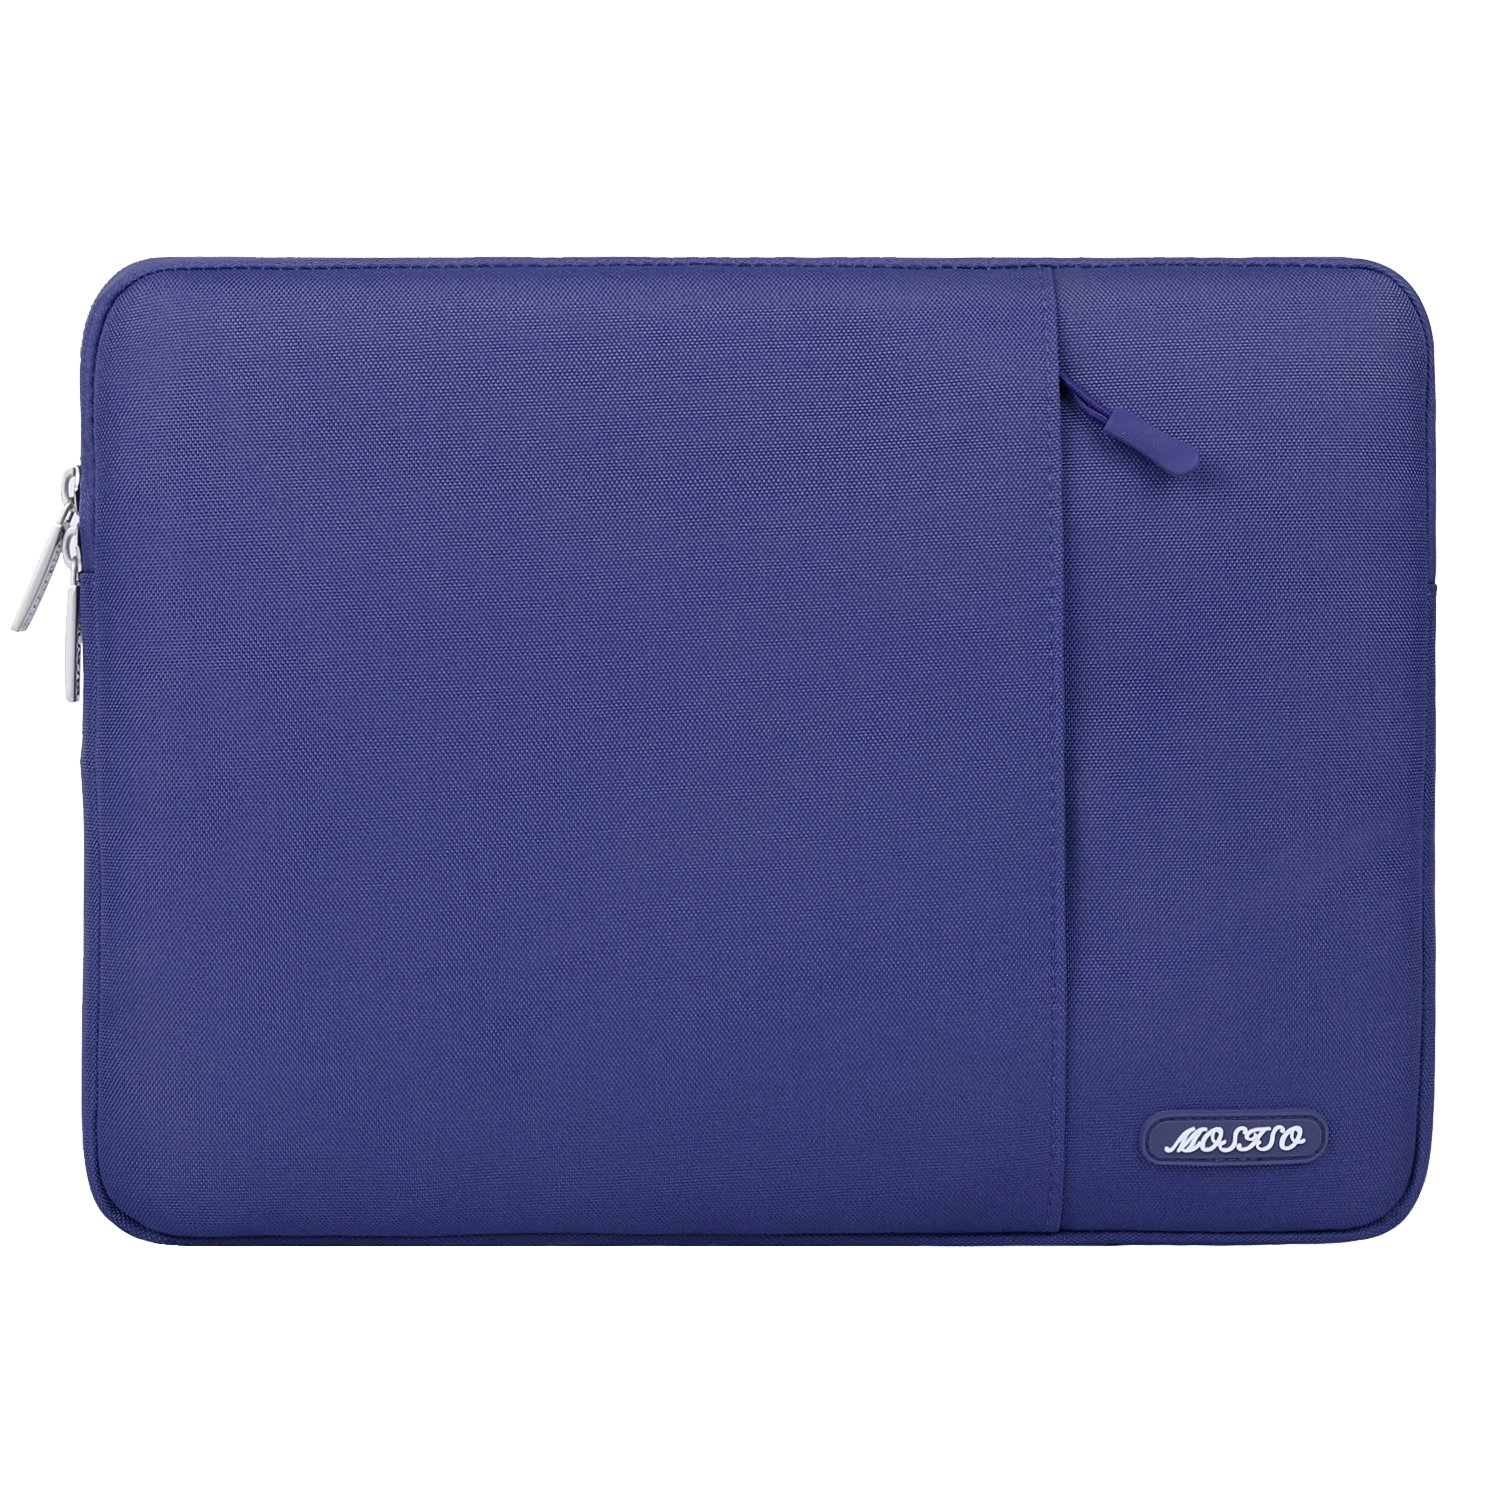 Mosiso Polyester Vertical Style Water Repellent Laptop Sleeve Case Bag Cover with Pocket for 13-13.3 inch MacBook Pro, MacBook Air, Notebook, Deep Teal